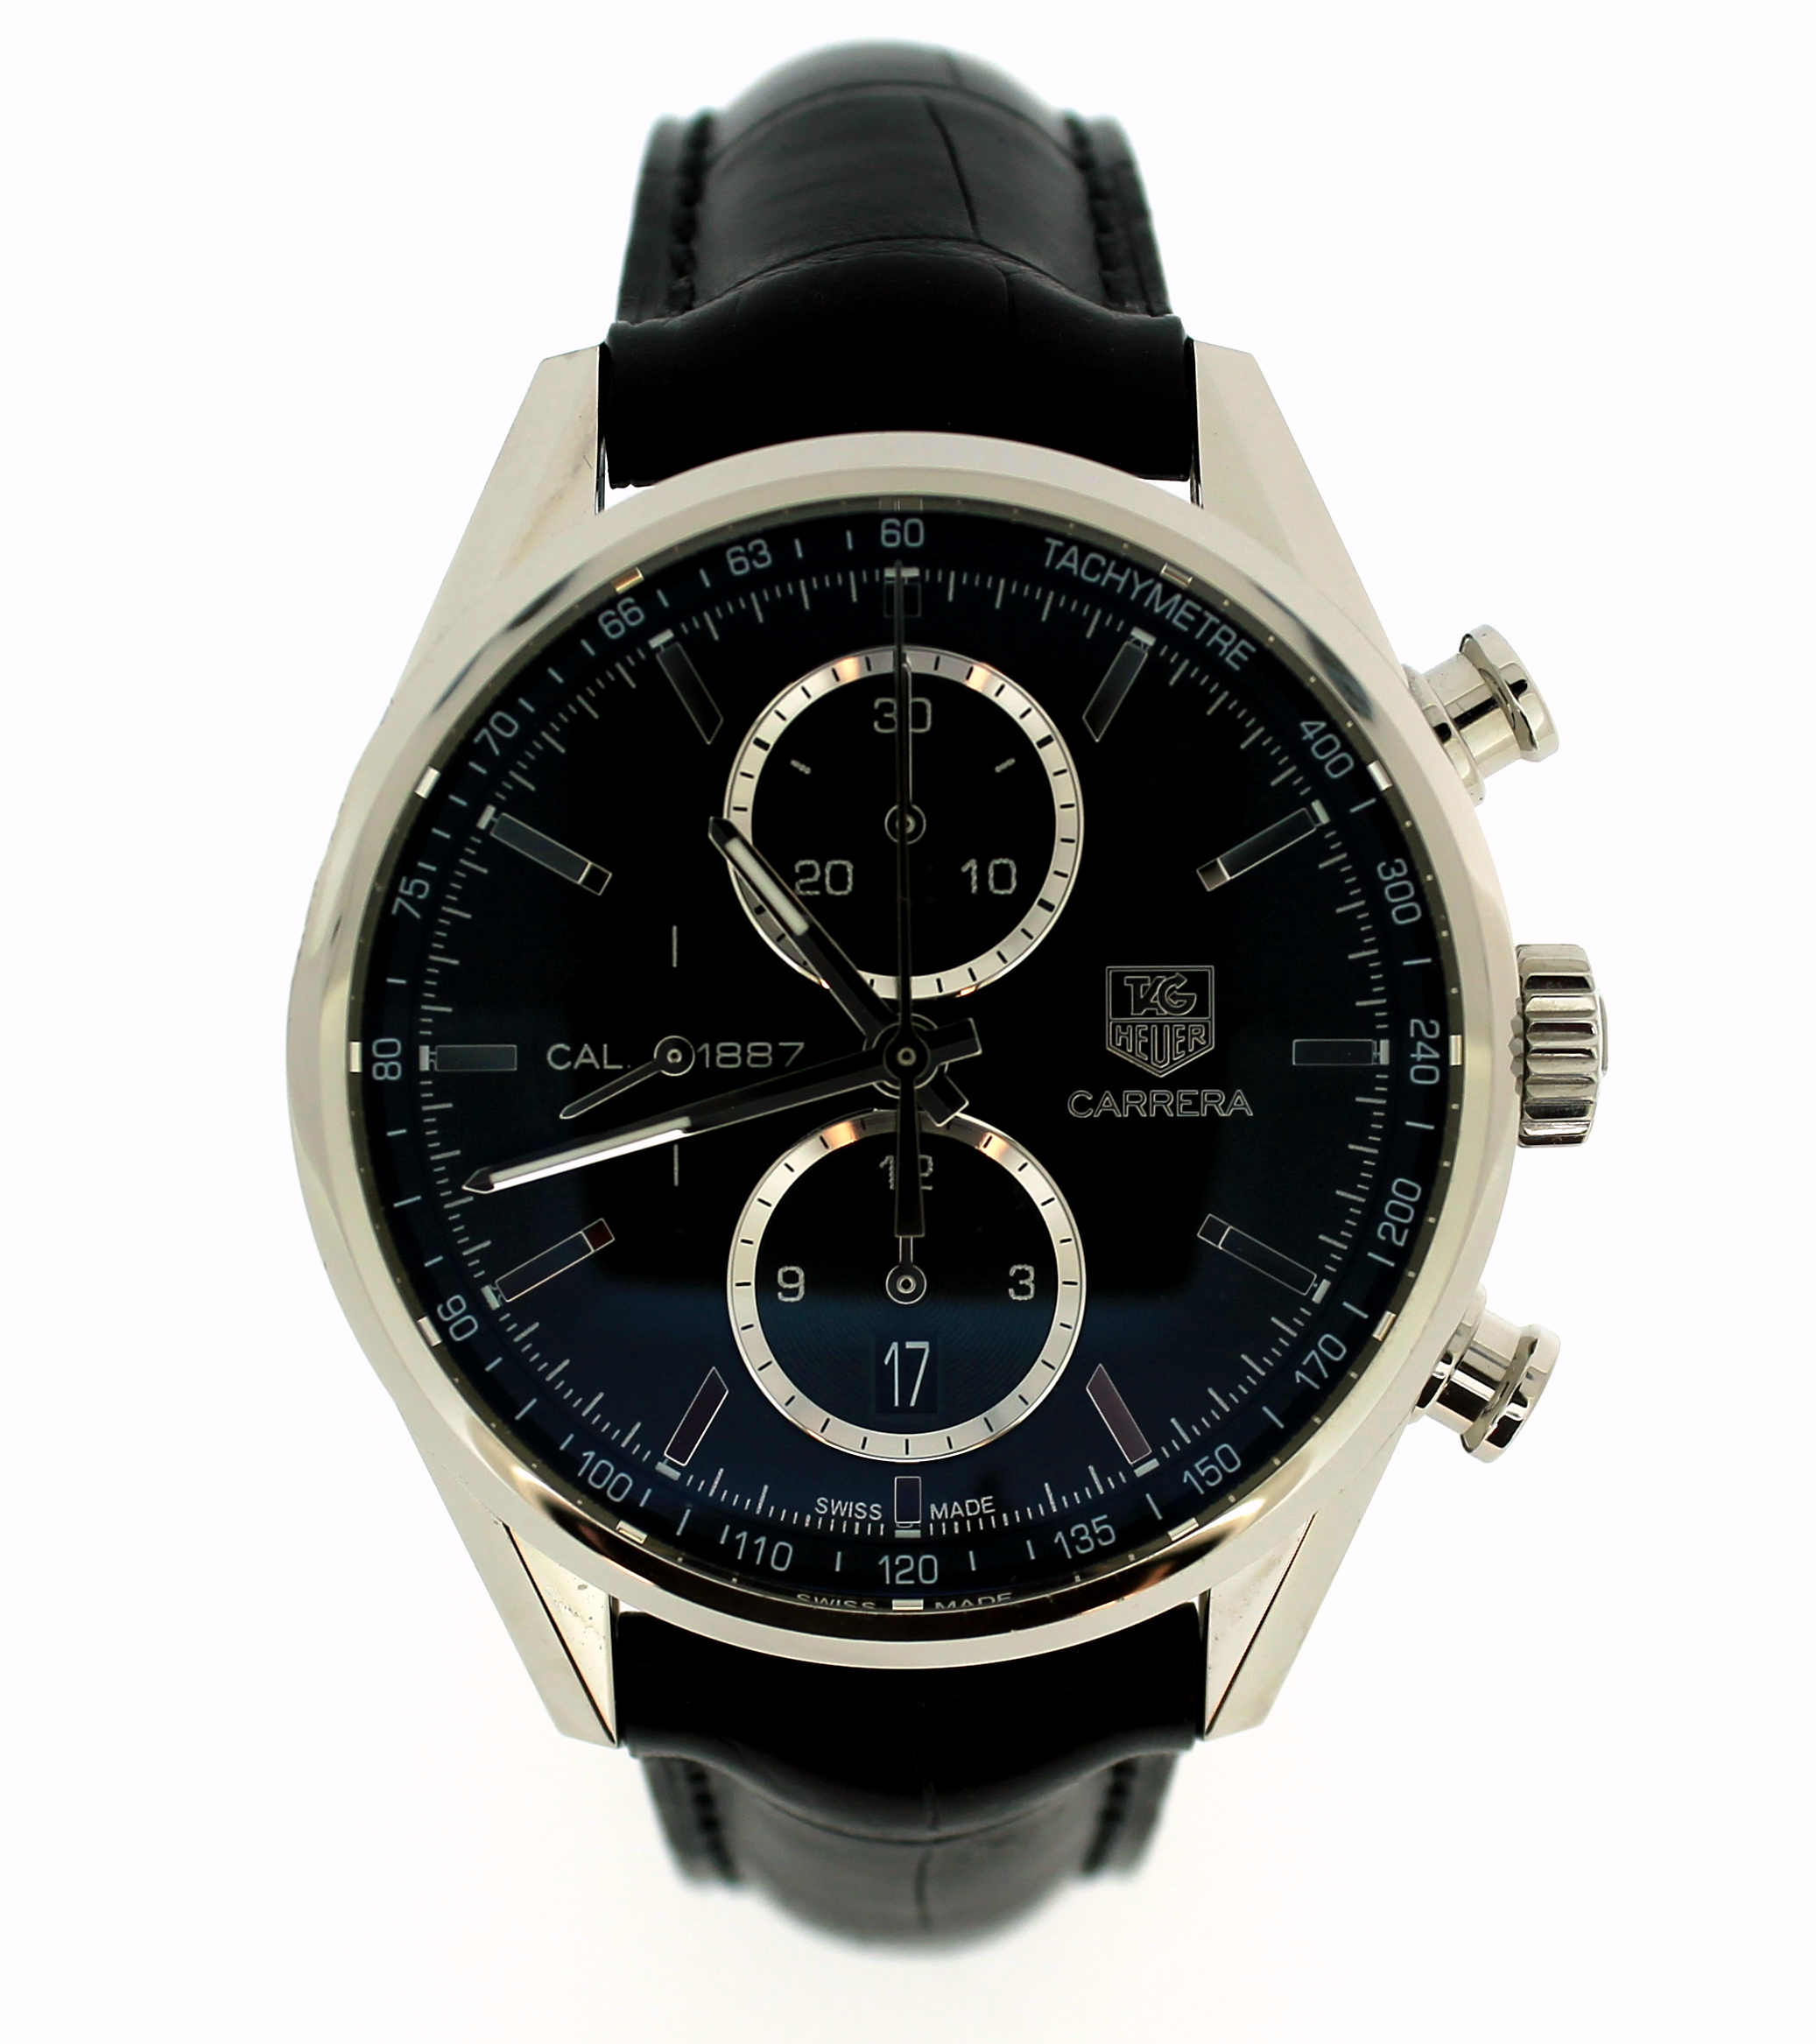 Lot 5046 - *Gentlemen's Tag Heuer Carrera automatic wristwatch, circular black dial with baton hour markers and